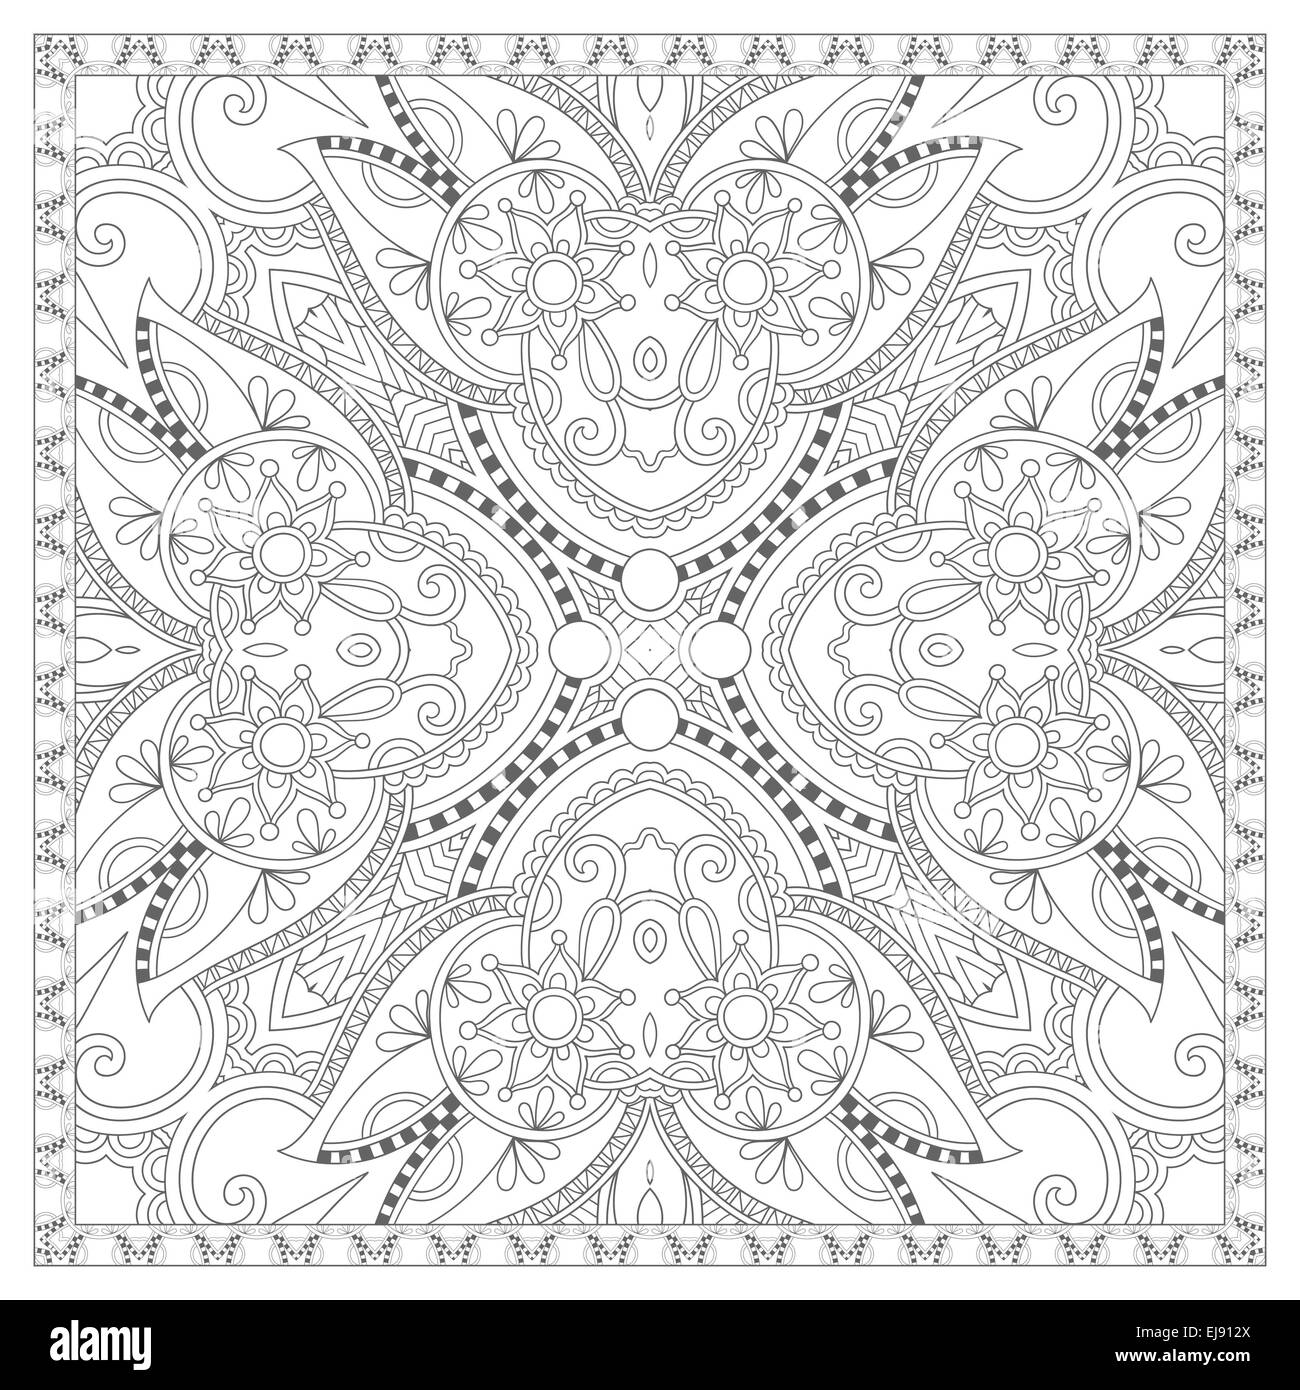 coloring book square page for adults - ethnic floral carpet Stock ...